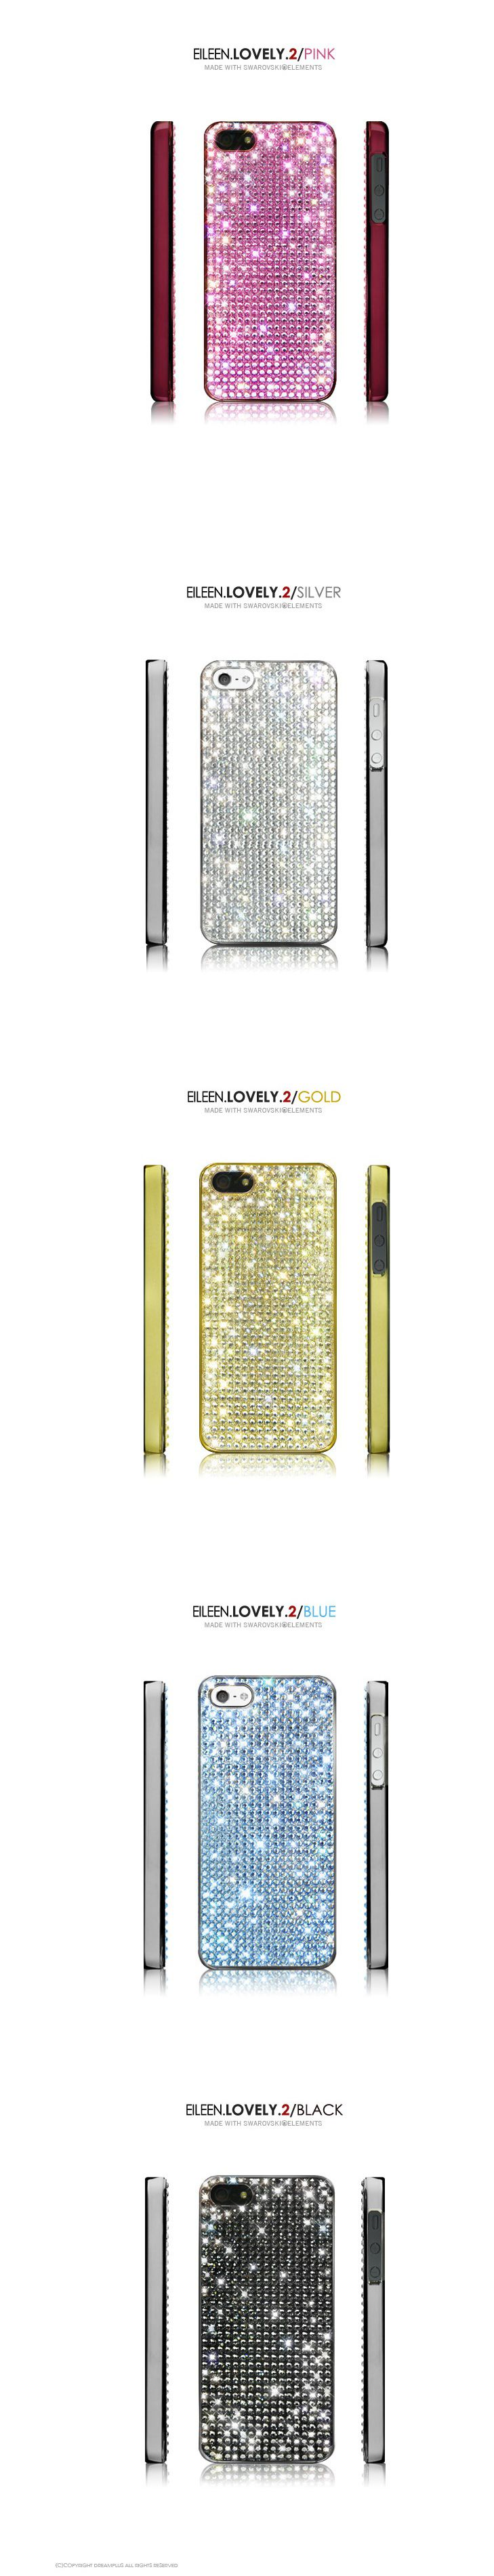 Eileen Lovely 2 phonecase for iphone 5. Premium Crystal decorated case.